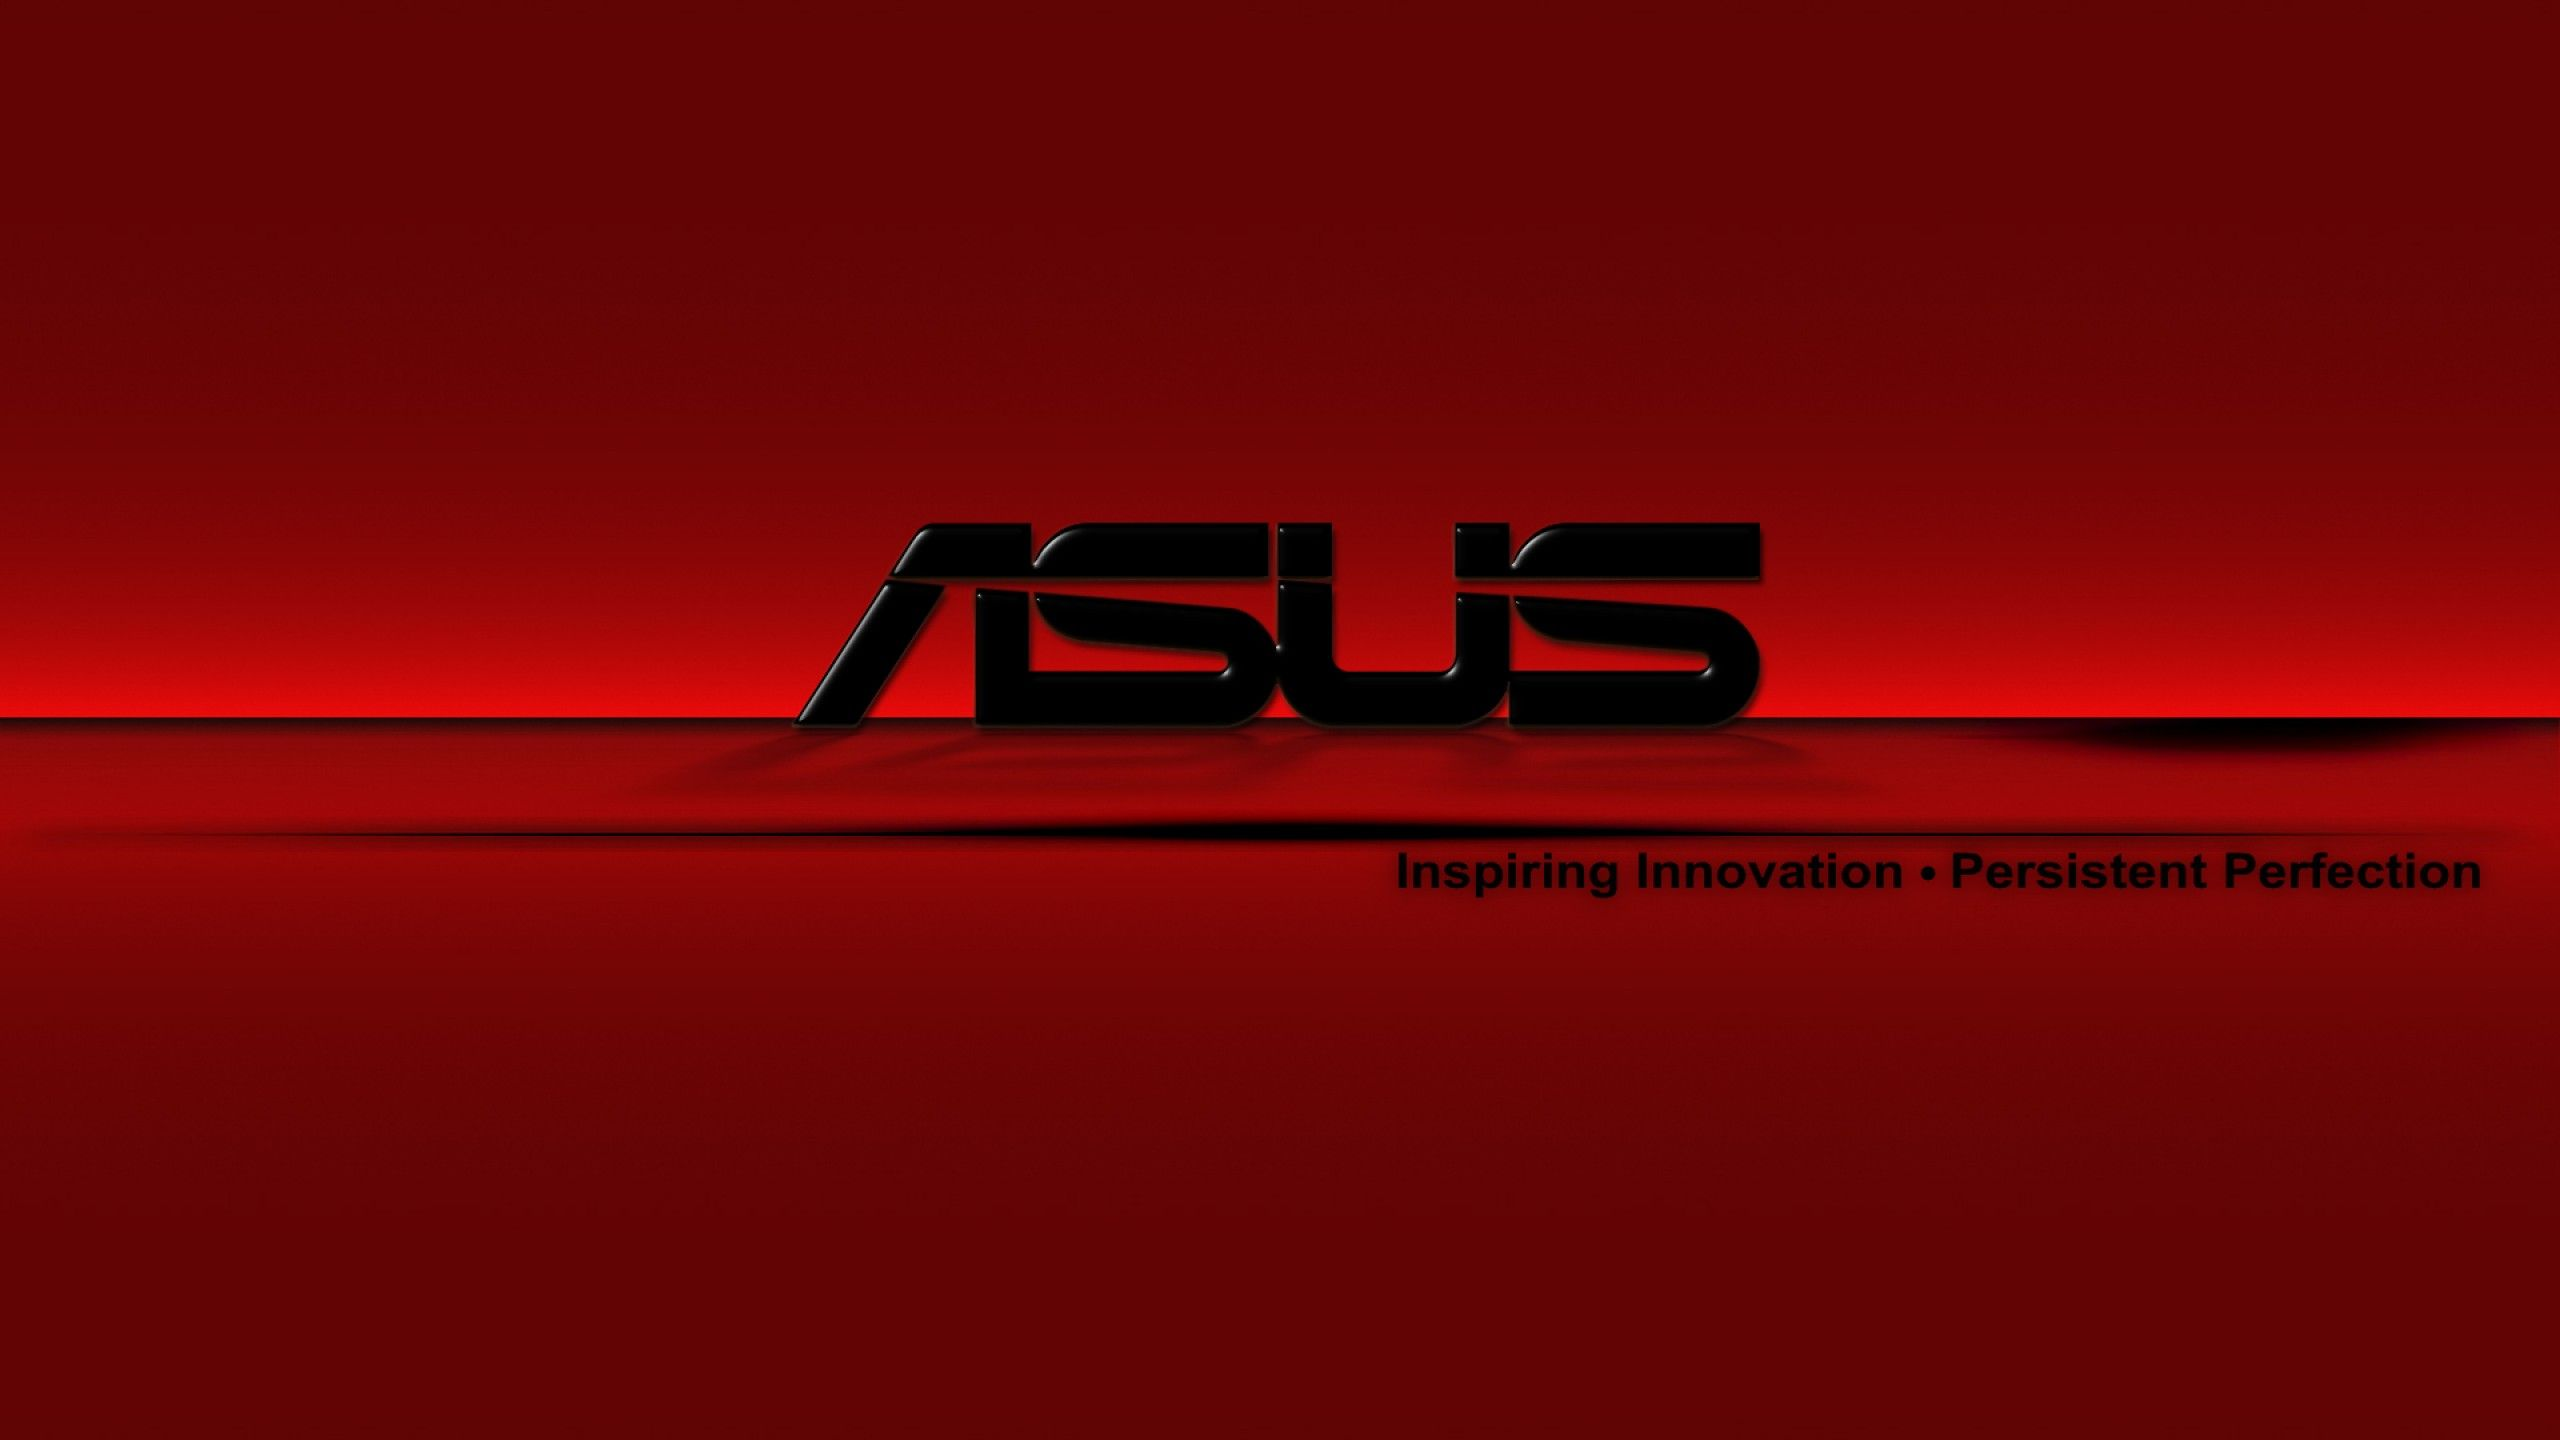 Red Asus Hd Wallpaper Id 1167 Download Page Background Hd Wallpaper Wallpaper Hd Wallpaper